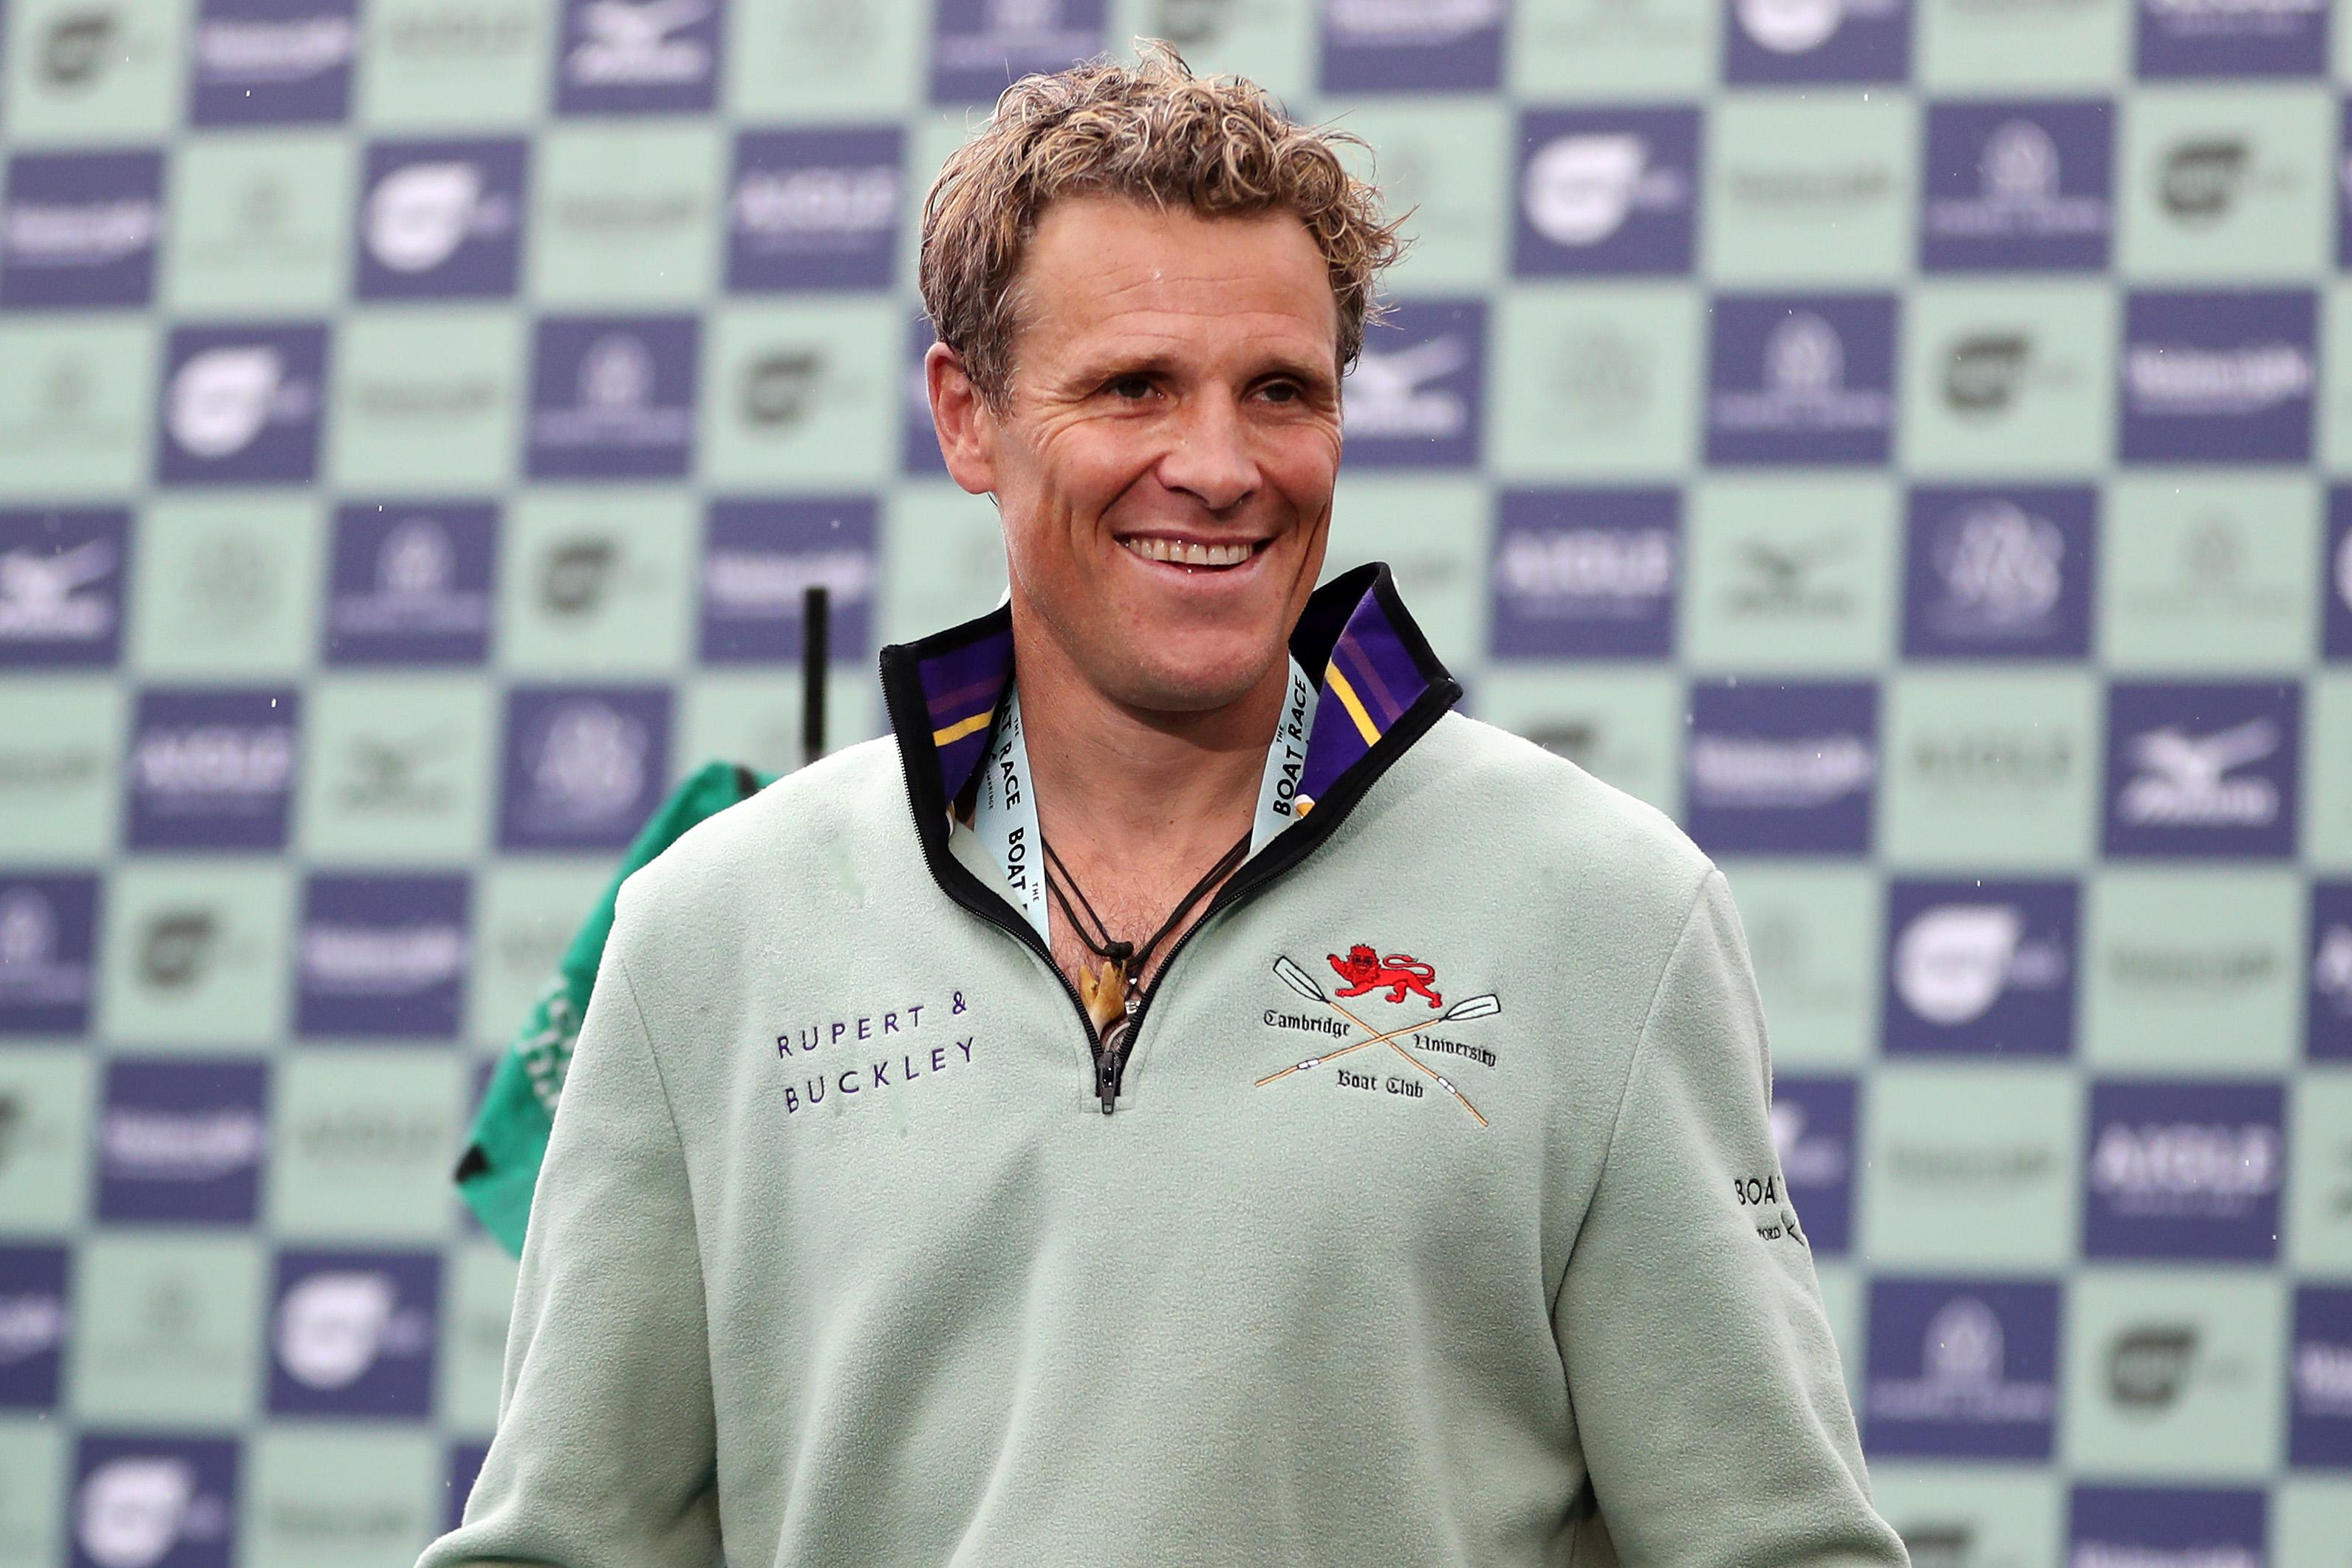 LONDON, ENGLAND - APRIL 07: James Cracknell of Cambridge University Boat Club celebrates on the victory podium after his team win during The Boat Race 2019 on April 07, 2019 in London, England. (Photo by Naomi Baker/Getty Images)